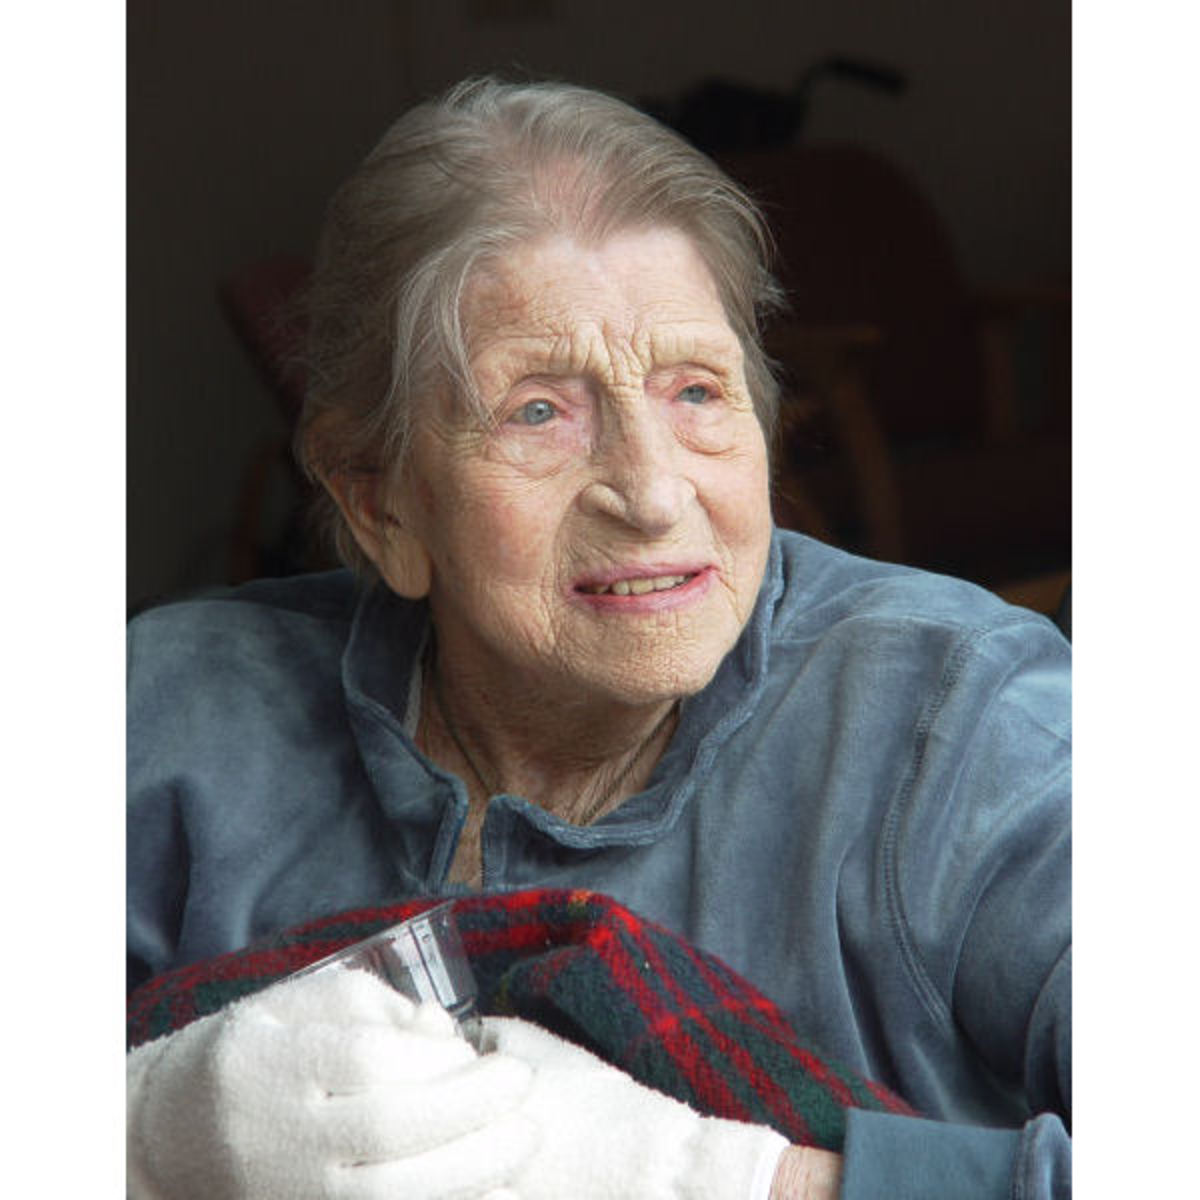 My mom 101 years old